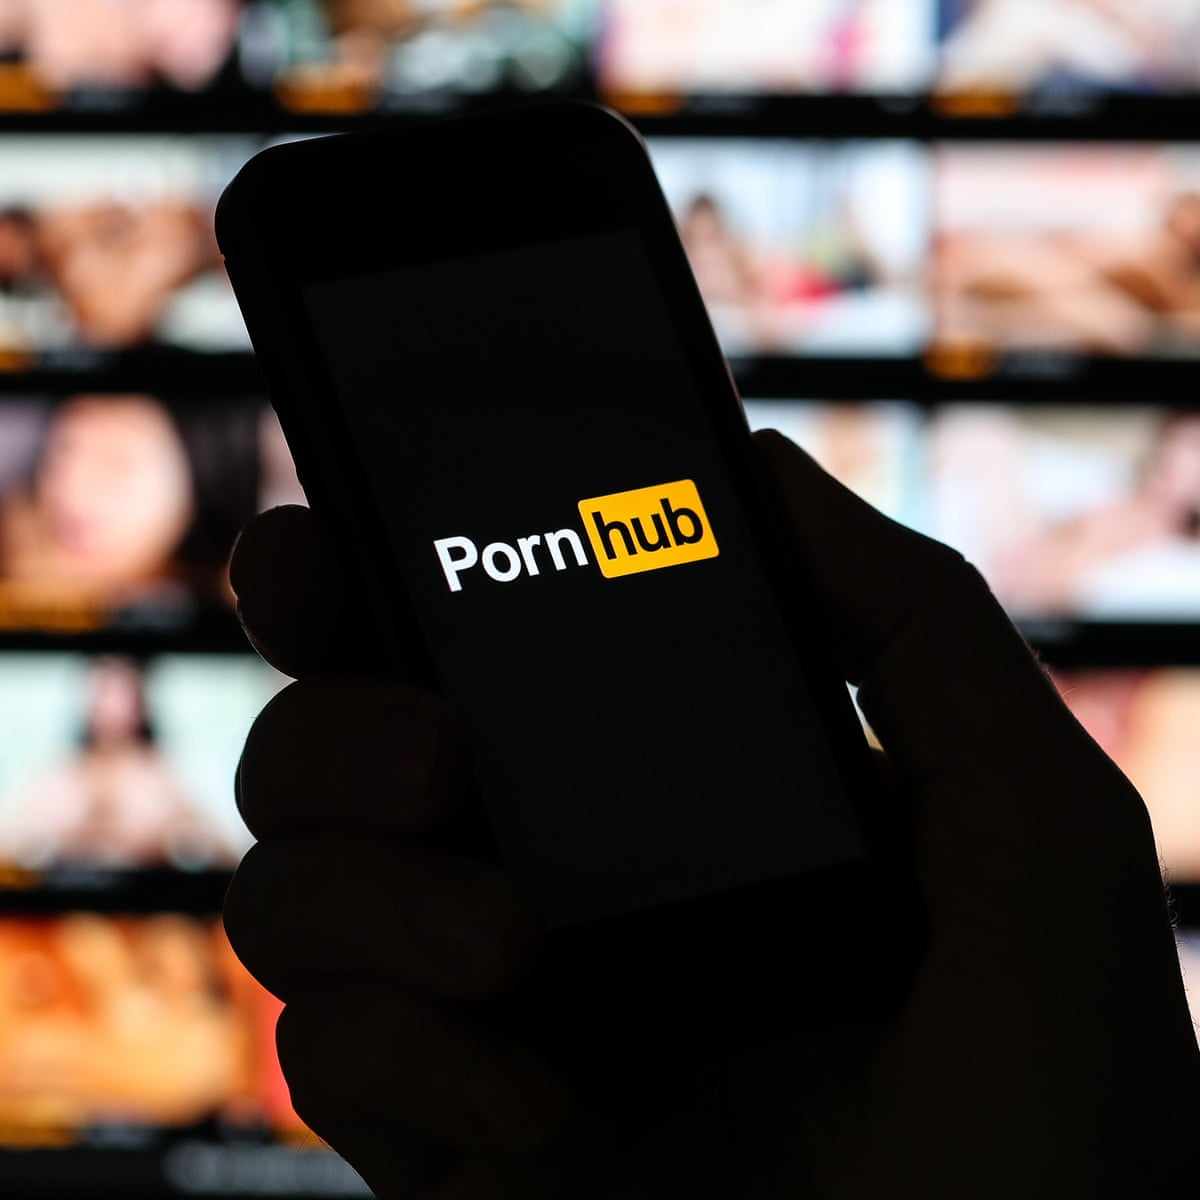 Application Porn urgent action needed as rise in porn site traffic raises